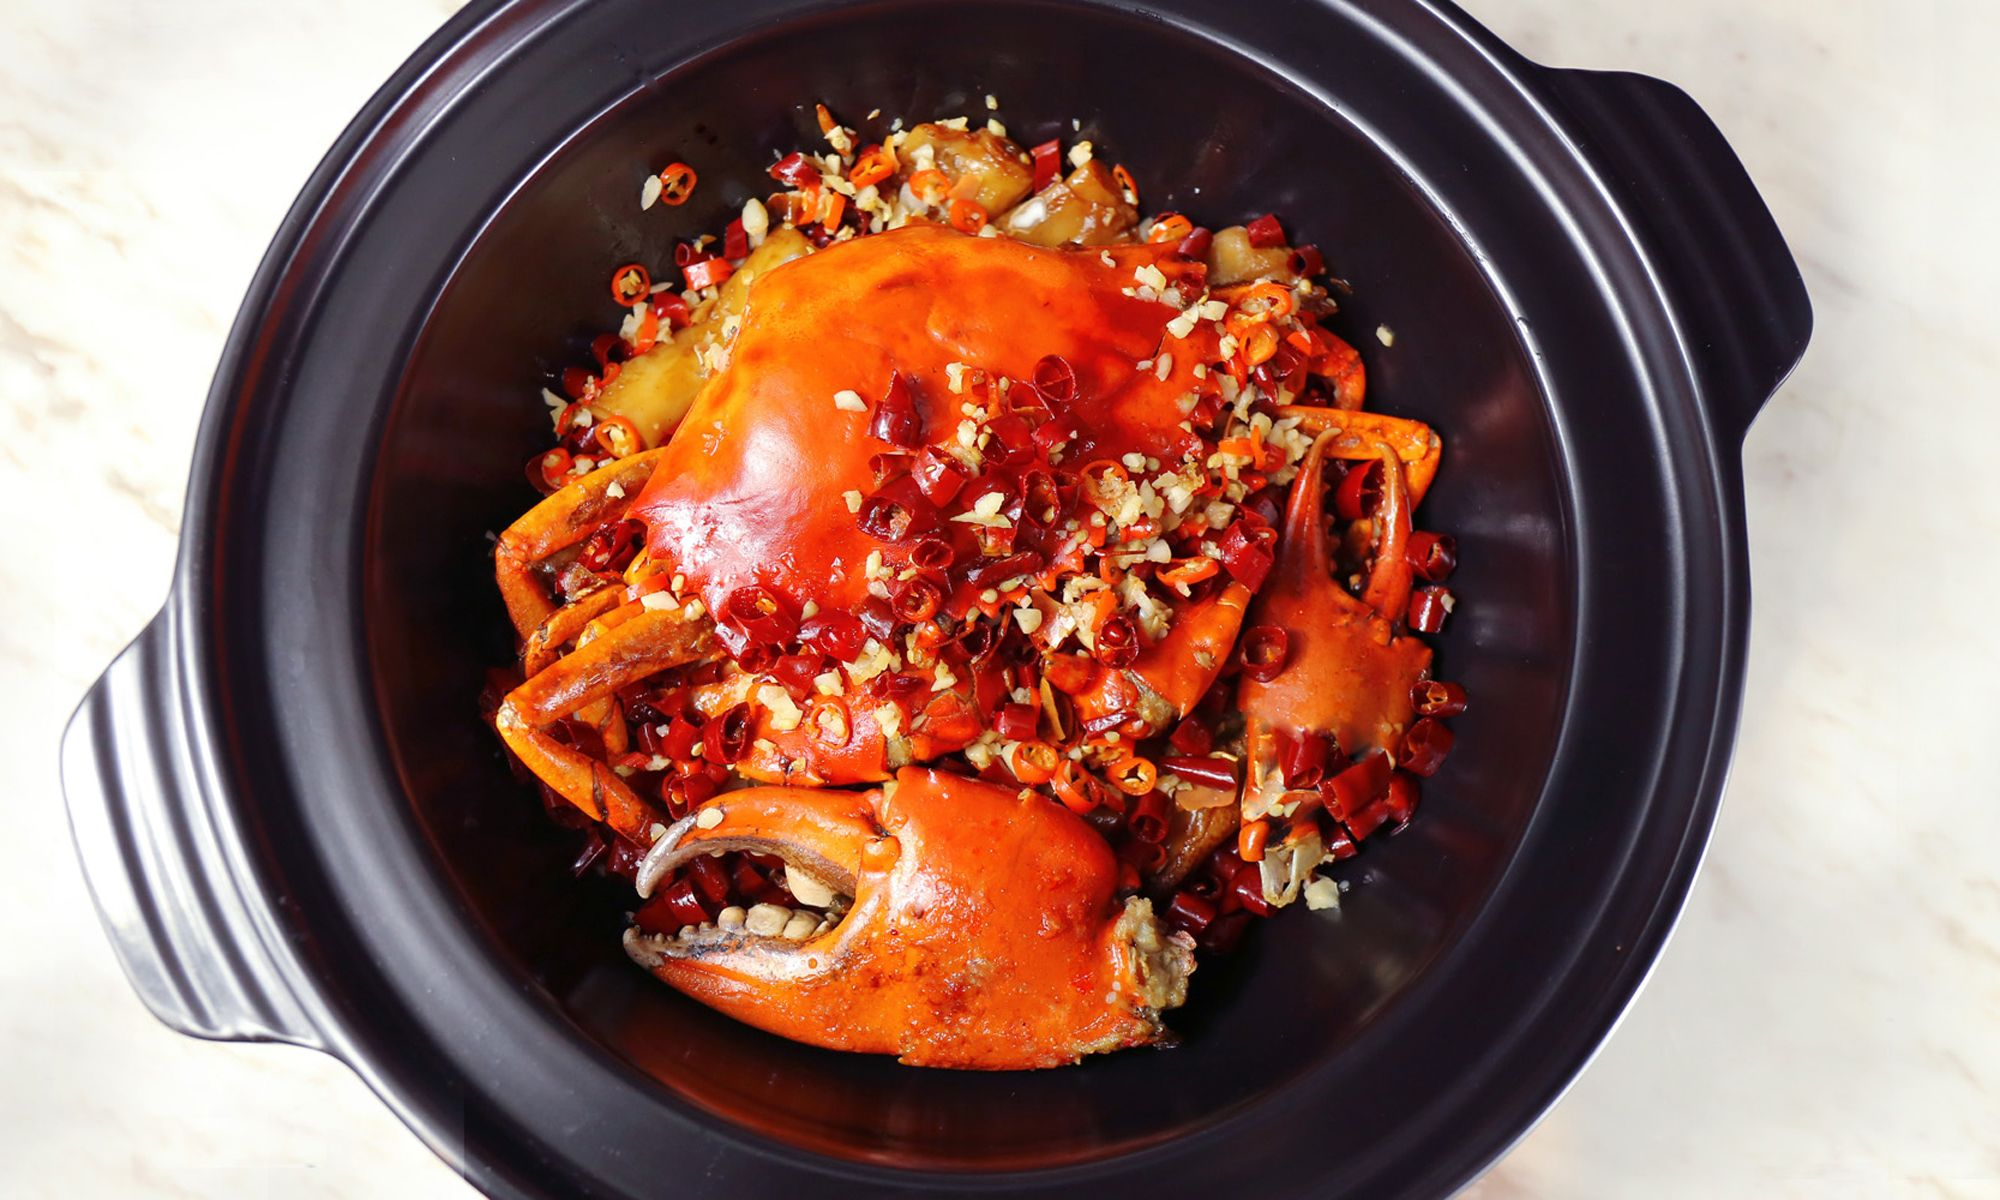 Tycoon Tann Presents Claypot Delicacies And Nourishing Winter Delights